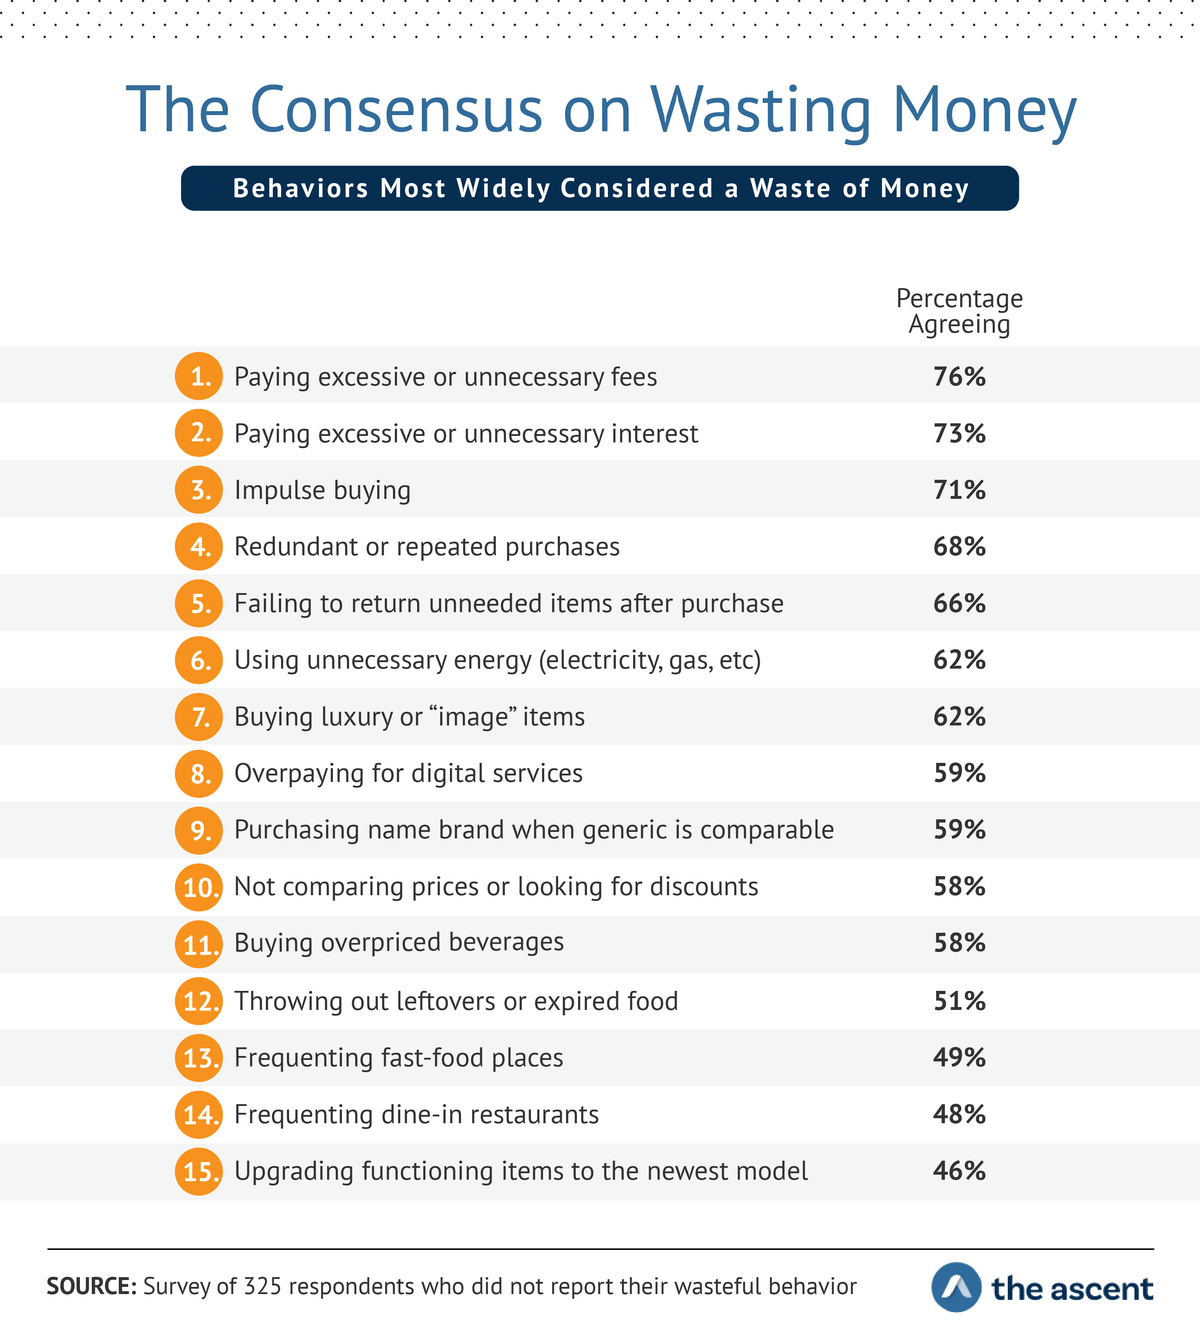 """The Consensus on Wasting Money: Behaviors Most Widely Considered a Waste of Money...  Paying excessive or unnecessary fees76% Paying excessive or unnecessary interest73% Impulse buying71% Redundant or duplicate purchases68% Failing to return unneeded items after purchase66% Using unnecessary energy62% Buying luxury or """"image"""" items62% Overpaying for digital services59% Purchasing name brand when a generic is equally good59% Not comparing prices or looking for discounts58% Buying overpriced beverages58% Throwing out leftovers or expired foods51% Frequenting fast food places49% Frequenting dine-in restaurants48% Upgrading functioning items to the newest model46%"""